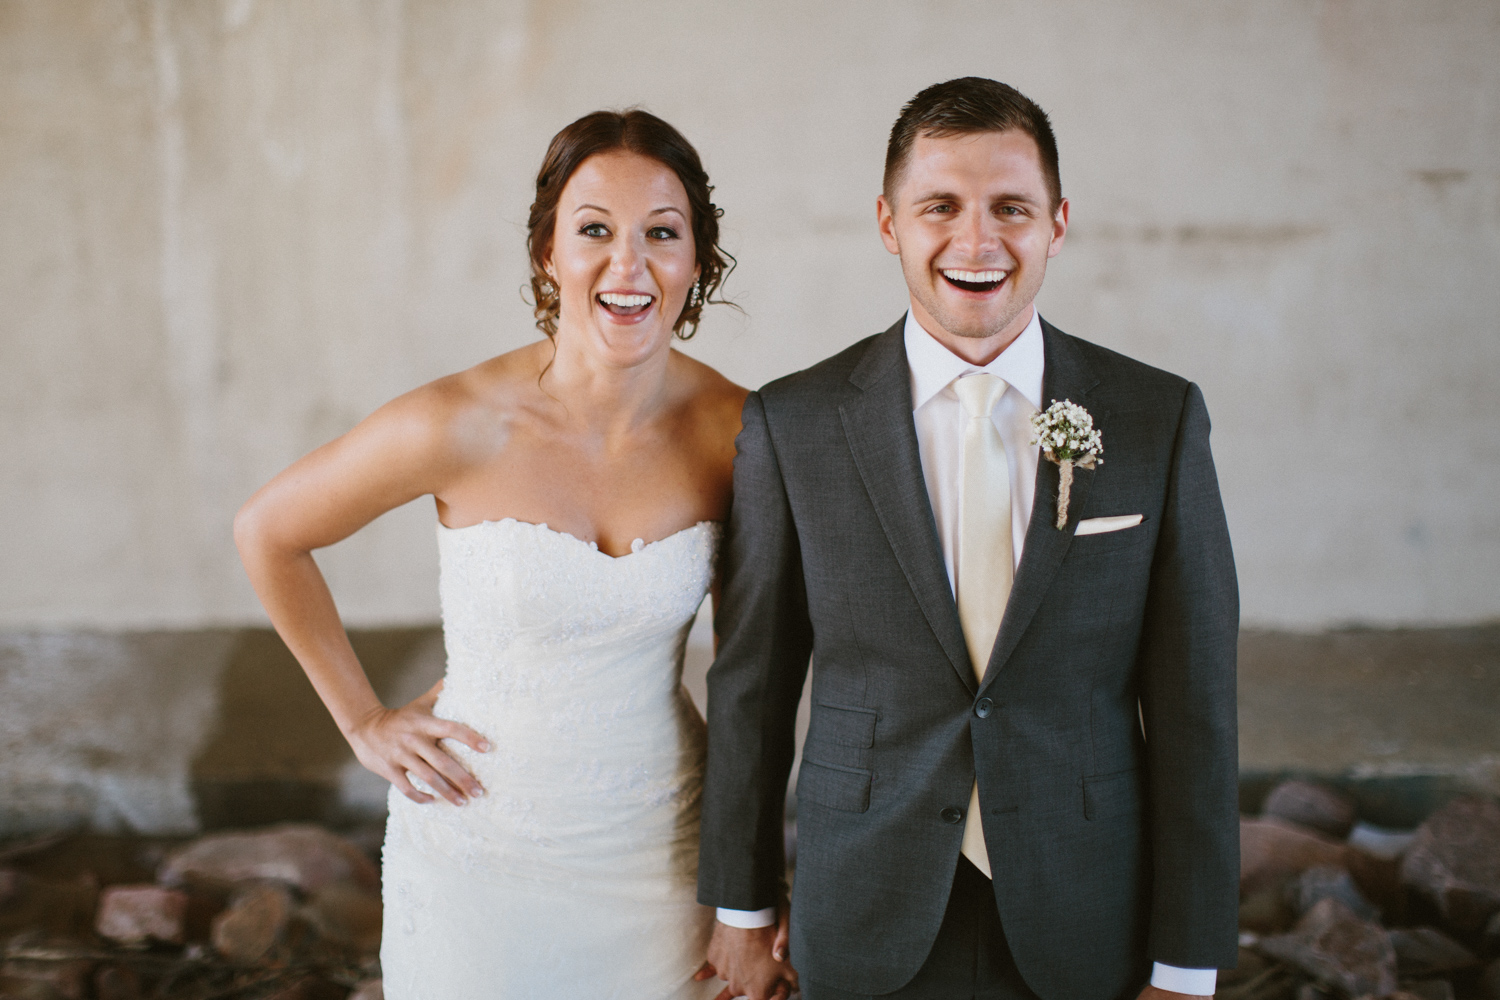 israel&aubrey_siouxfalls_wedding_photographer_42.jpg